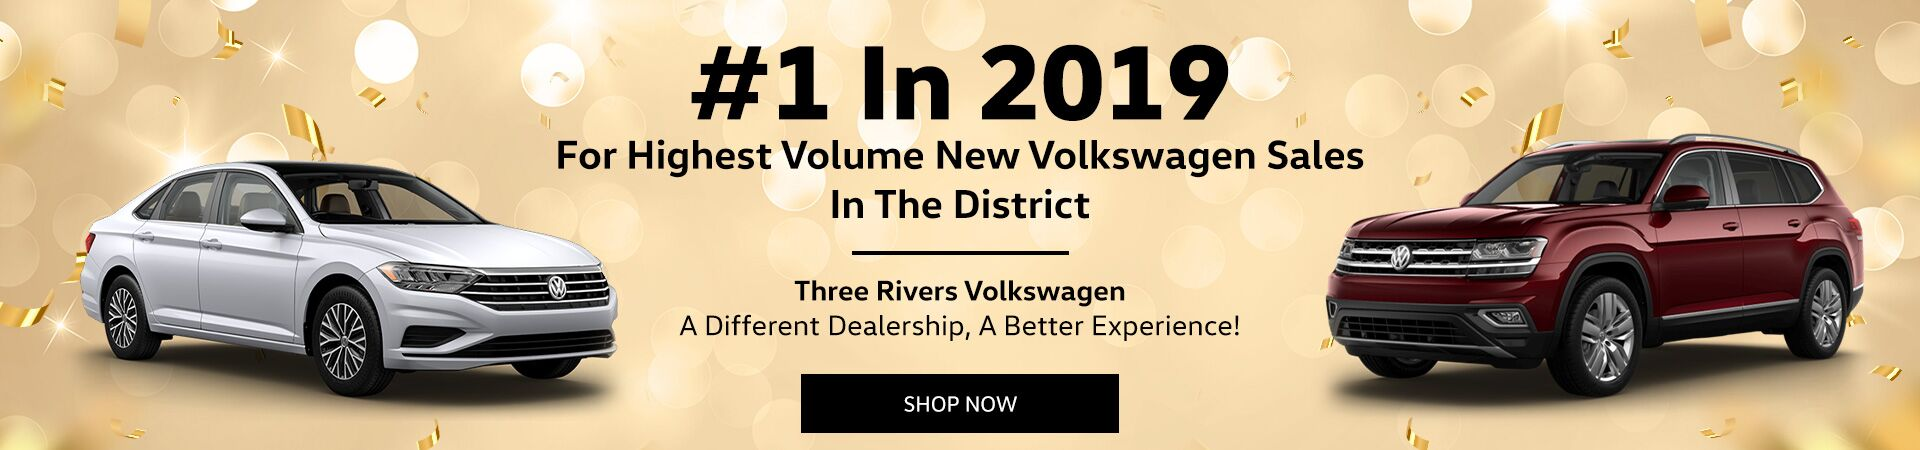 Highest Volume New VW Sales In The District For 2019